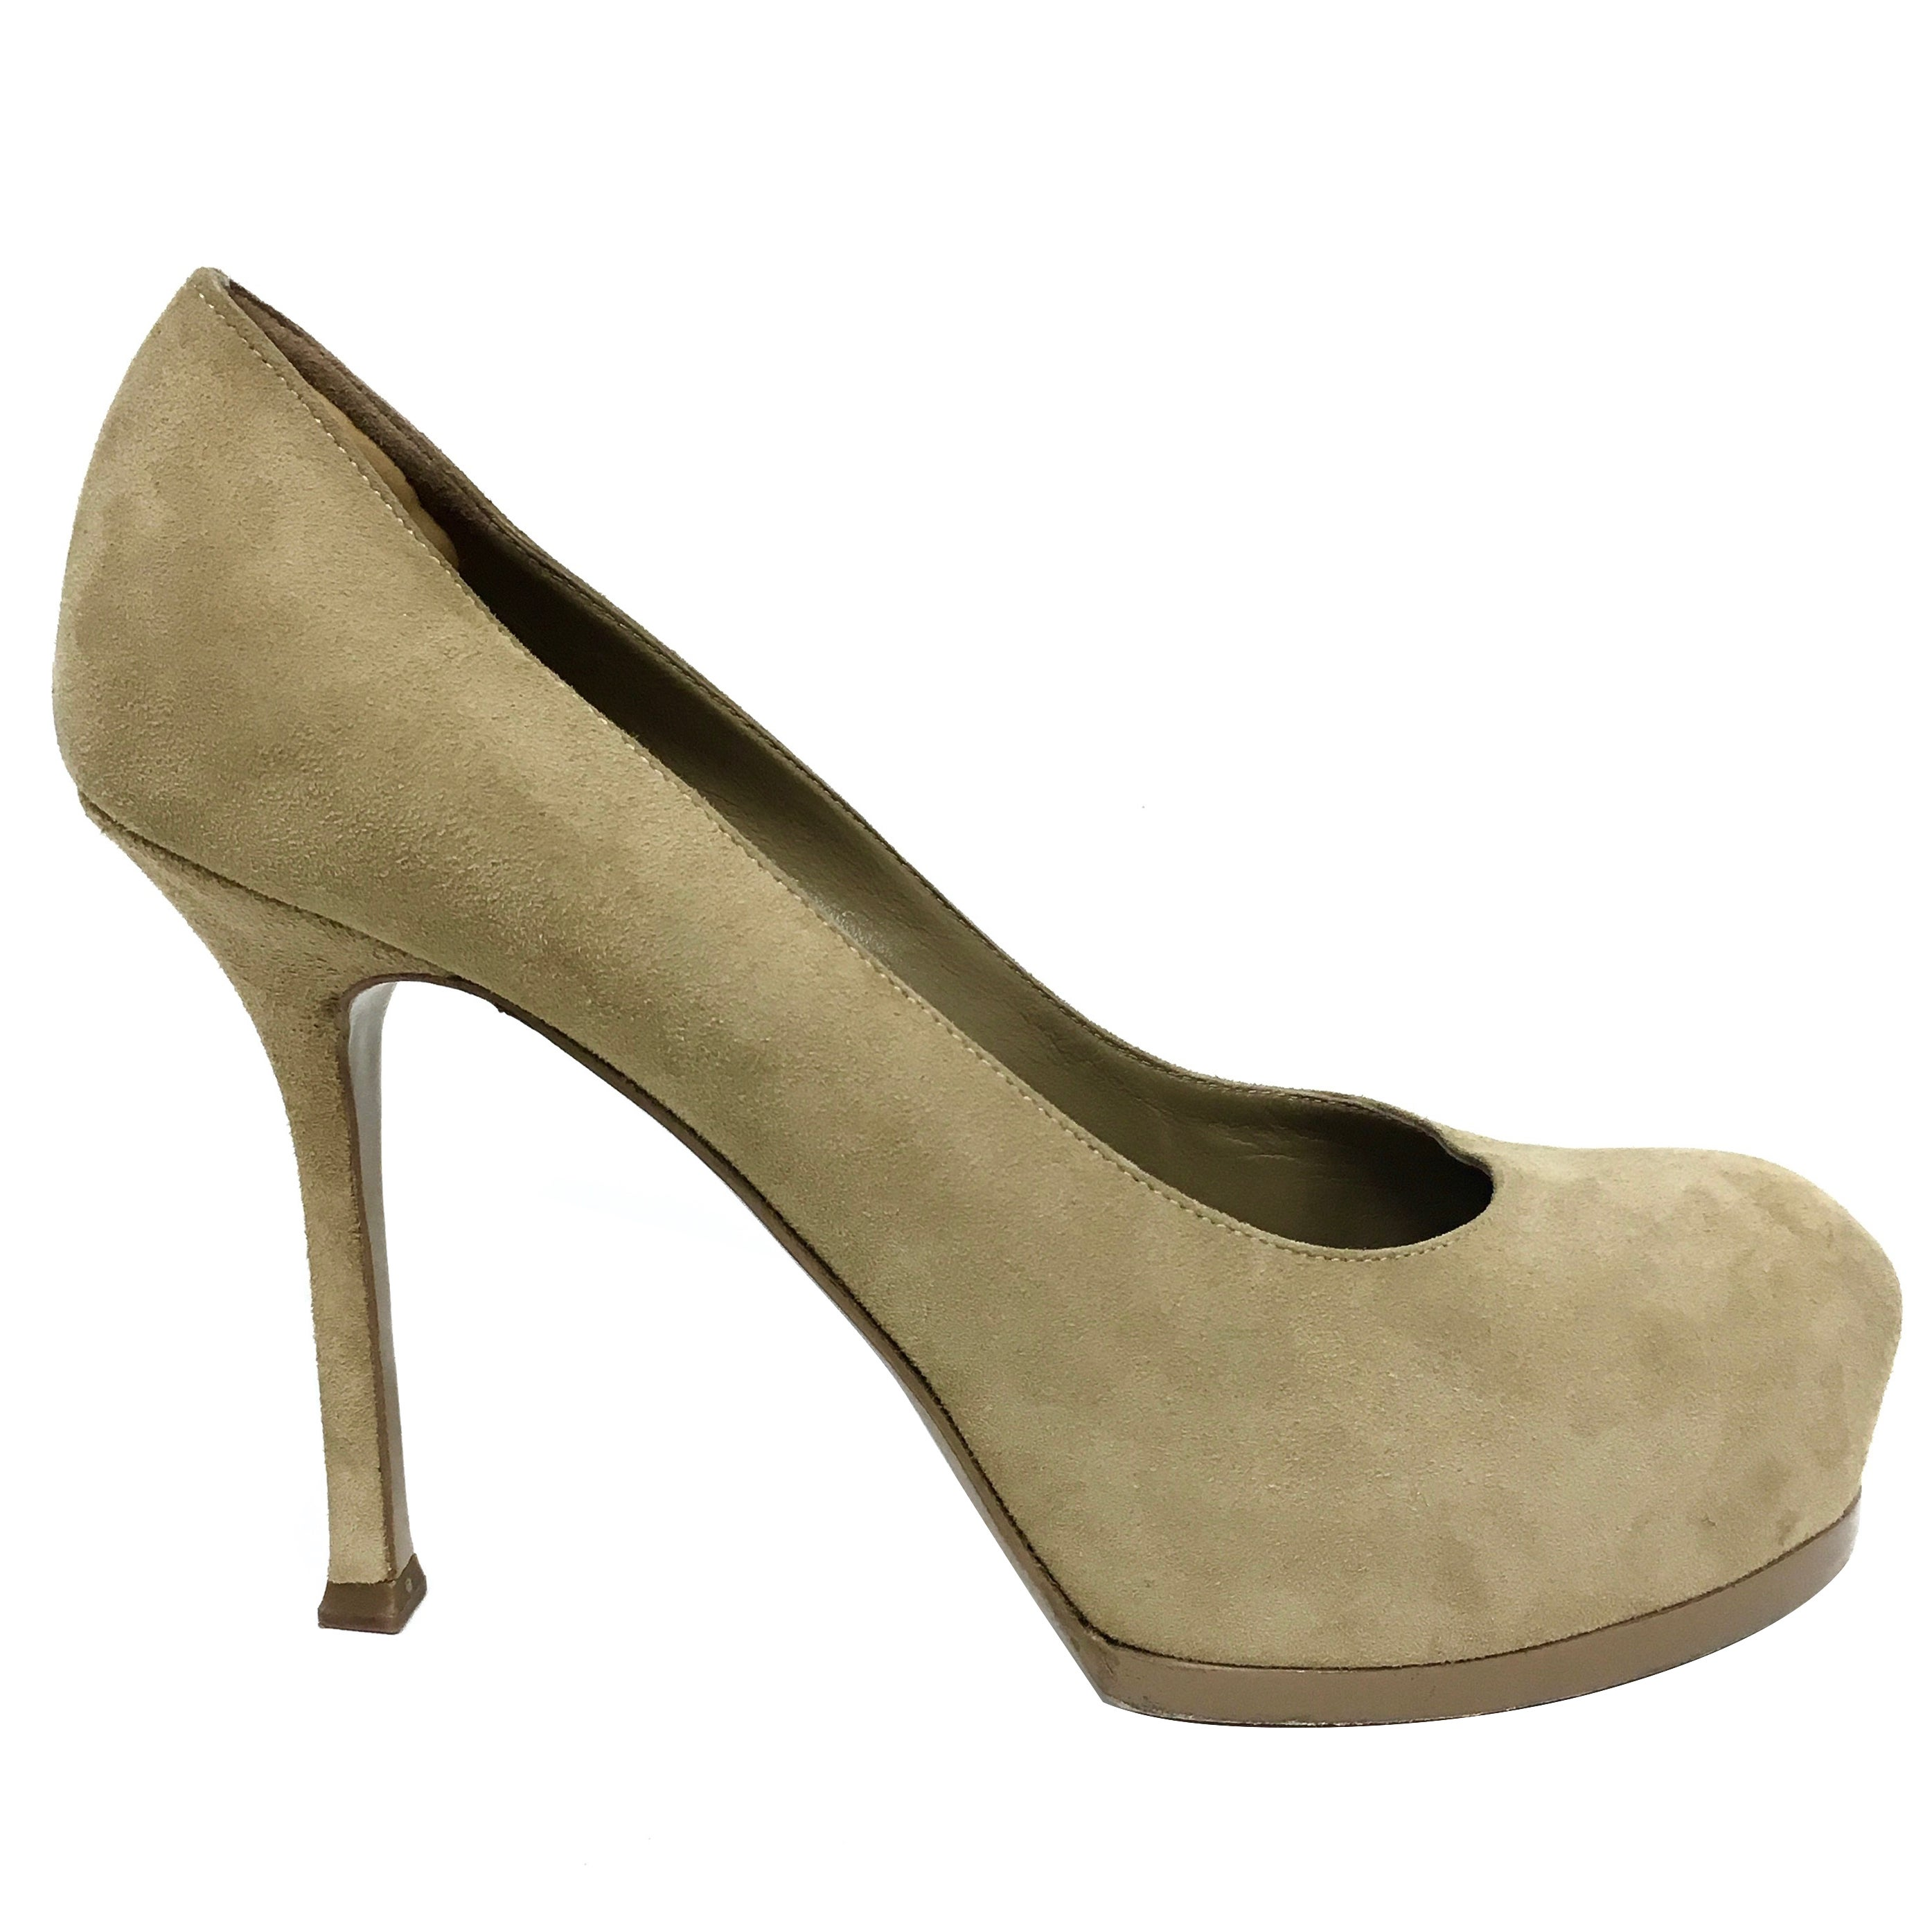 5aa557fa0a4 YSL Yves Saint Laurent Tribtoo 80 Nude Suede Pump Shoes in Box Size 37 For  Sale at 1stdibs